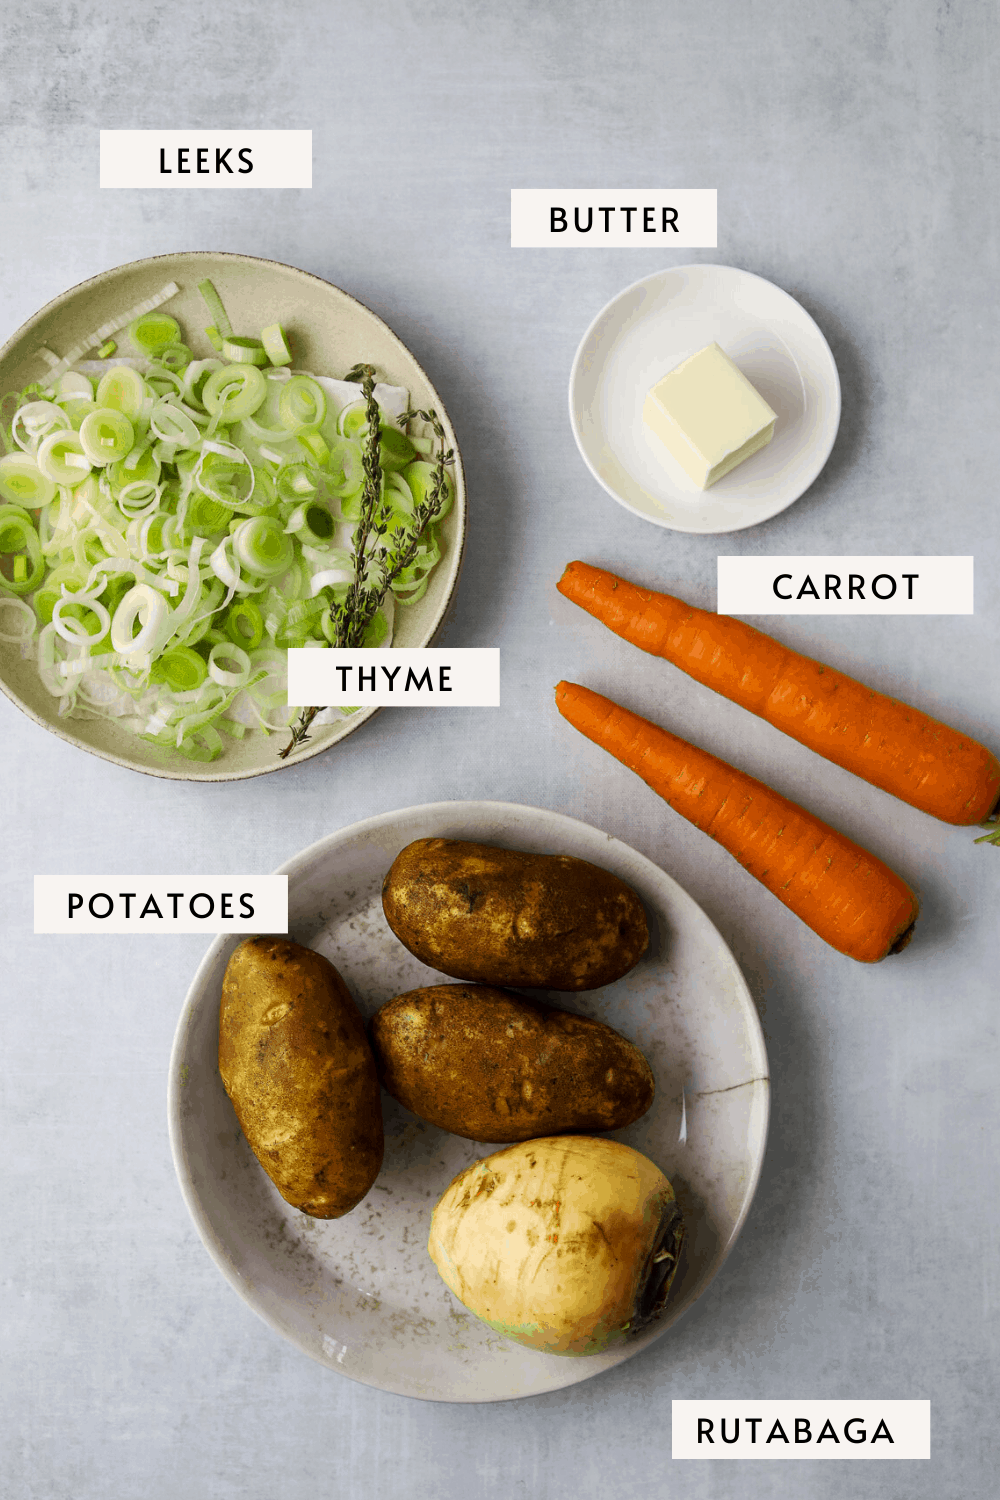 recipe ingredients, two carrots, chopped leeks in a bowl, fresh thyme, potatoes, rutabaga